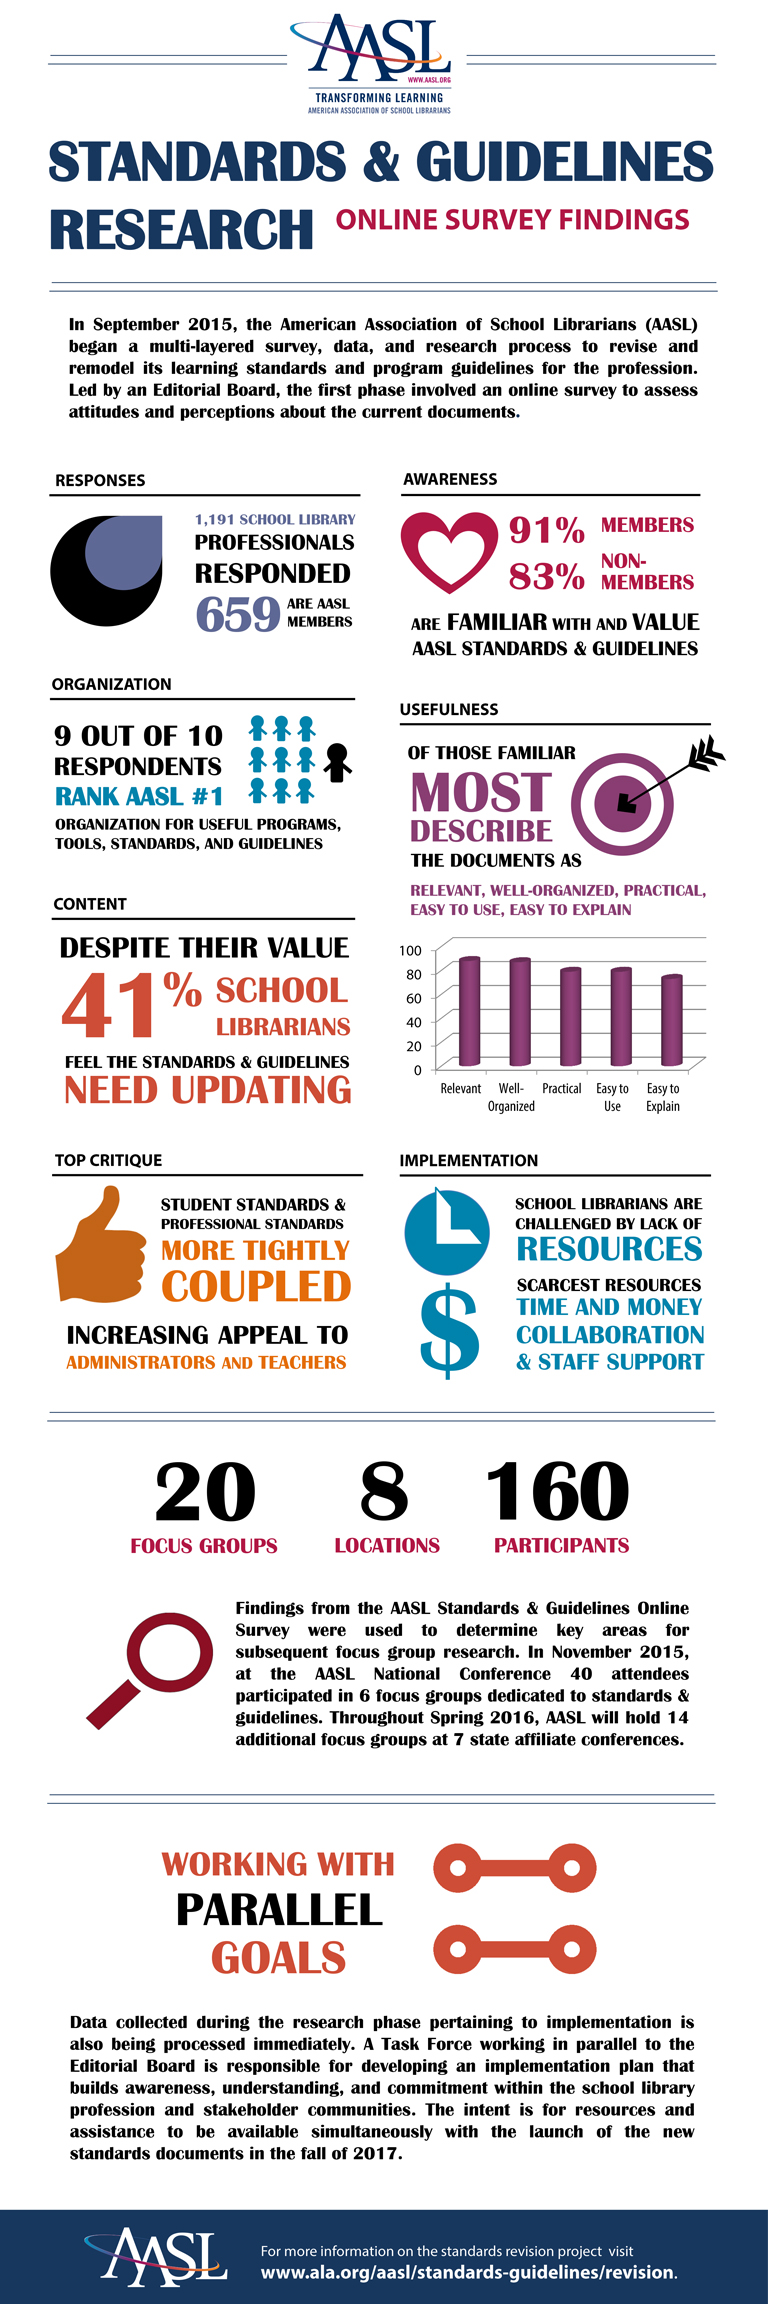 S&G_OnlineSurvey_Infographic-768